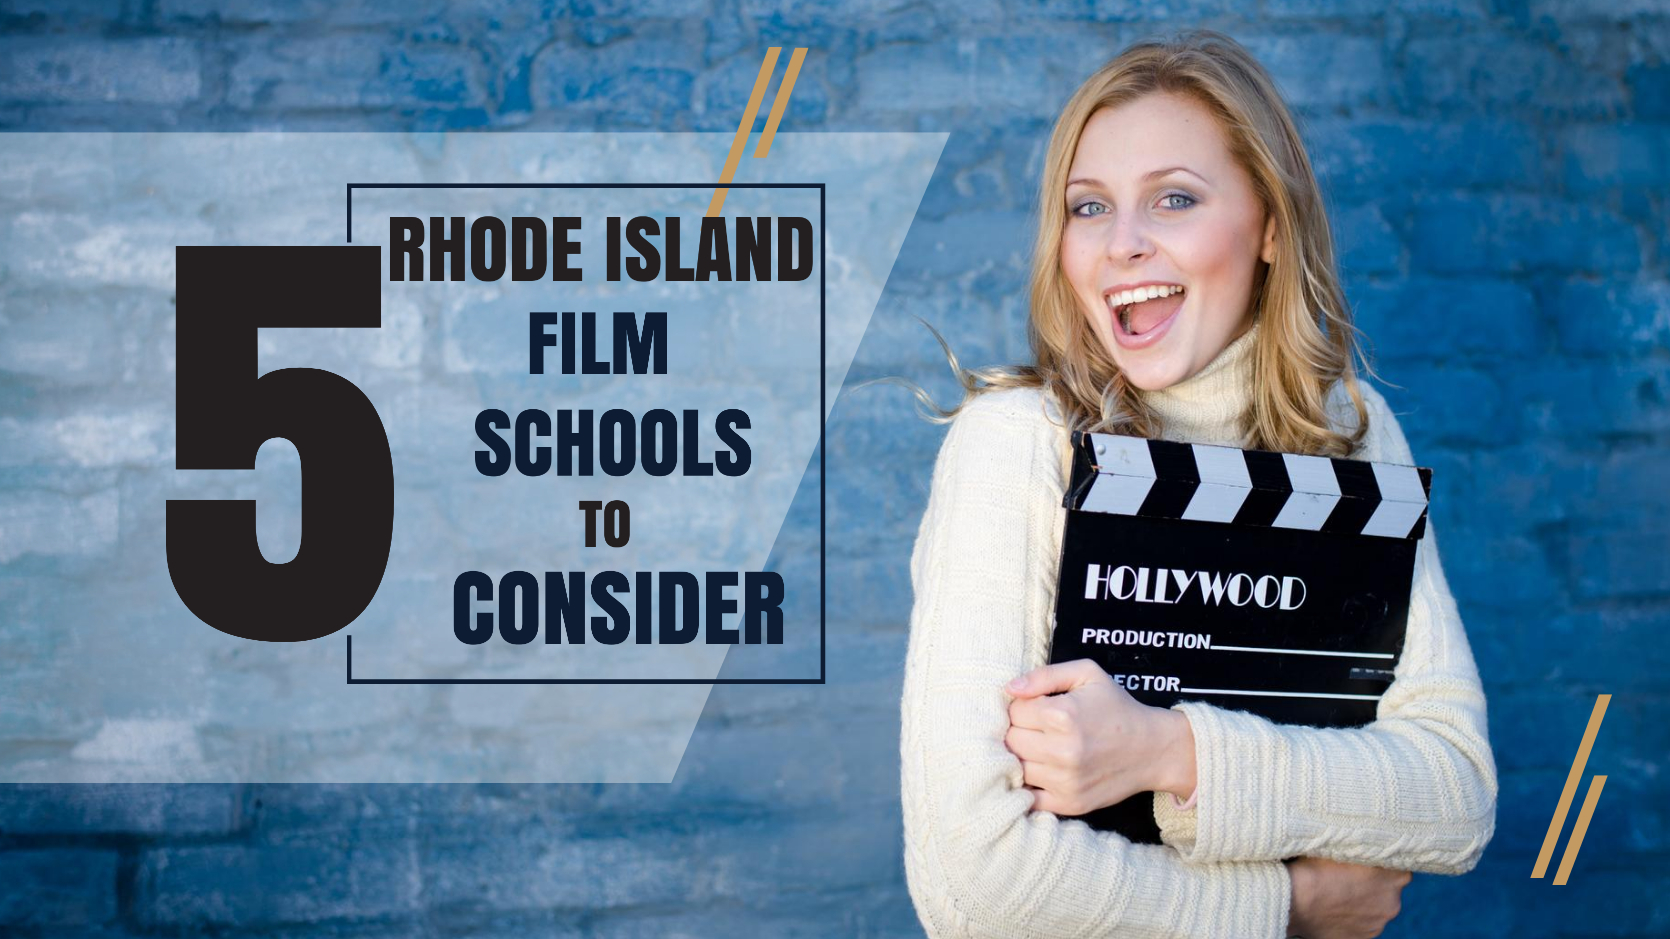 Top 5 Rhode Island film schools for filmmakers to consider